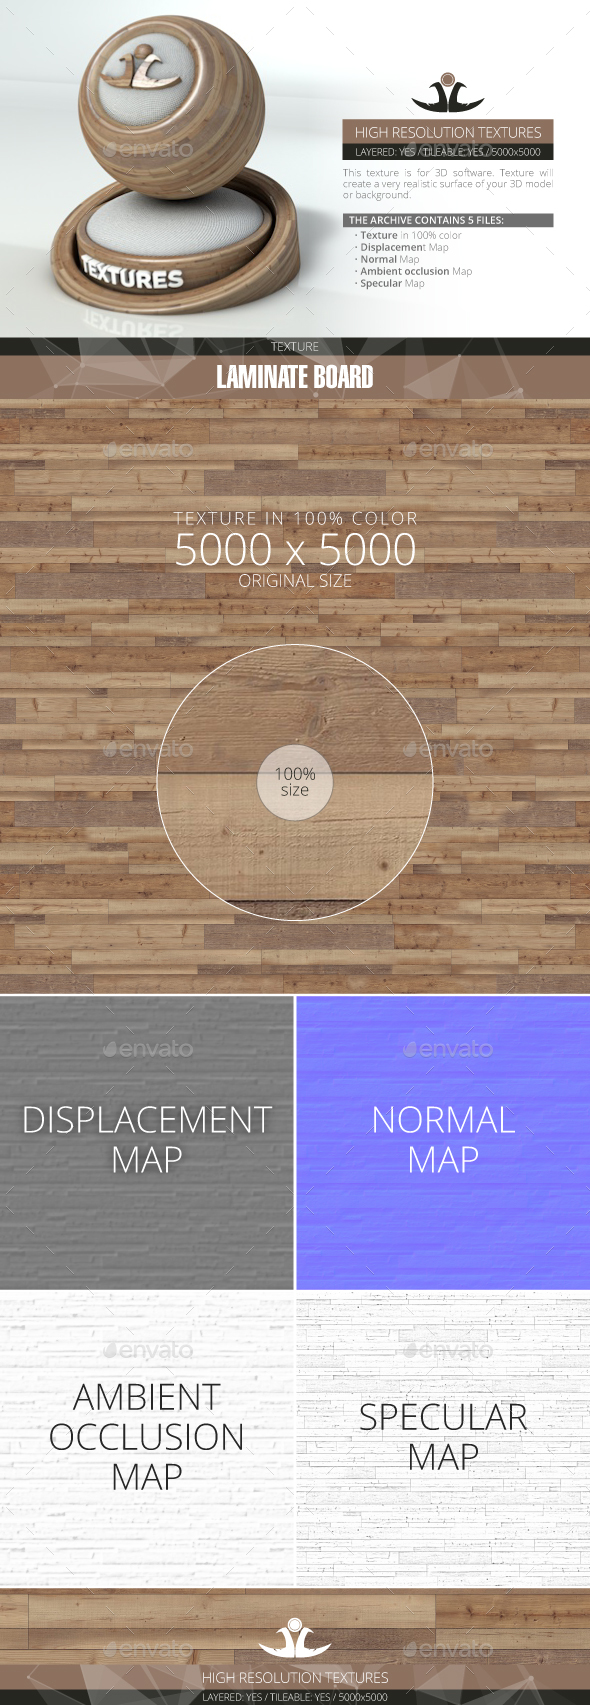 Laminate Board 89 - 3DOcean Item for Sale